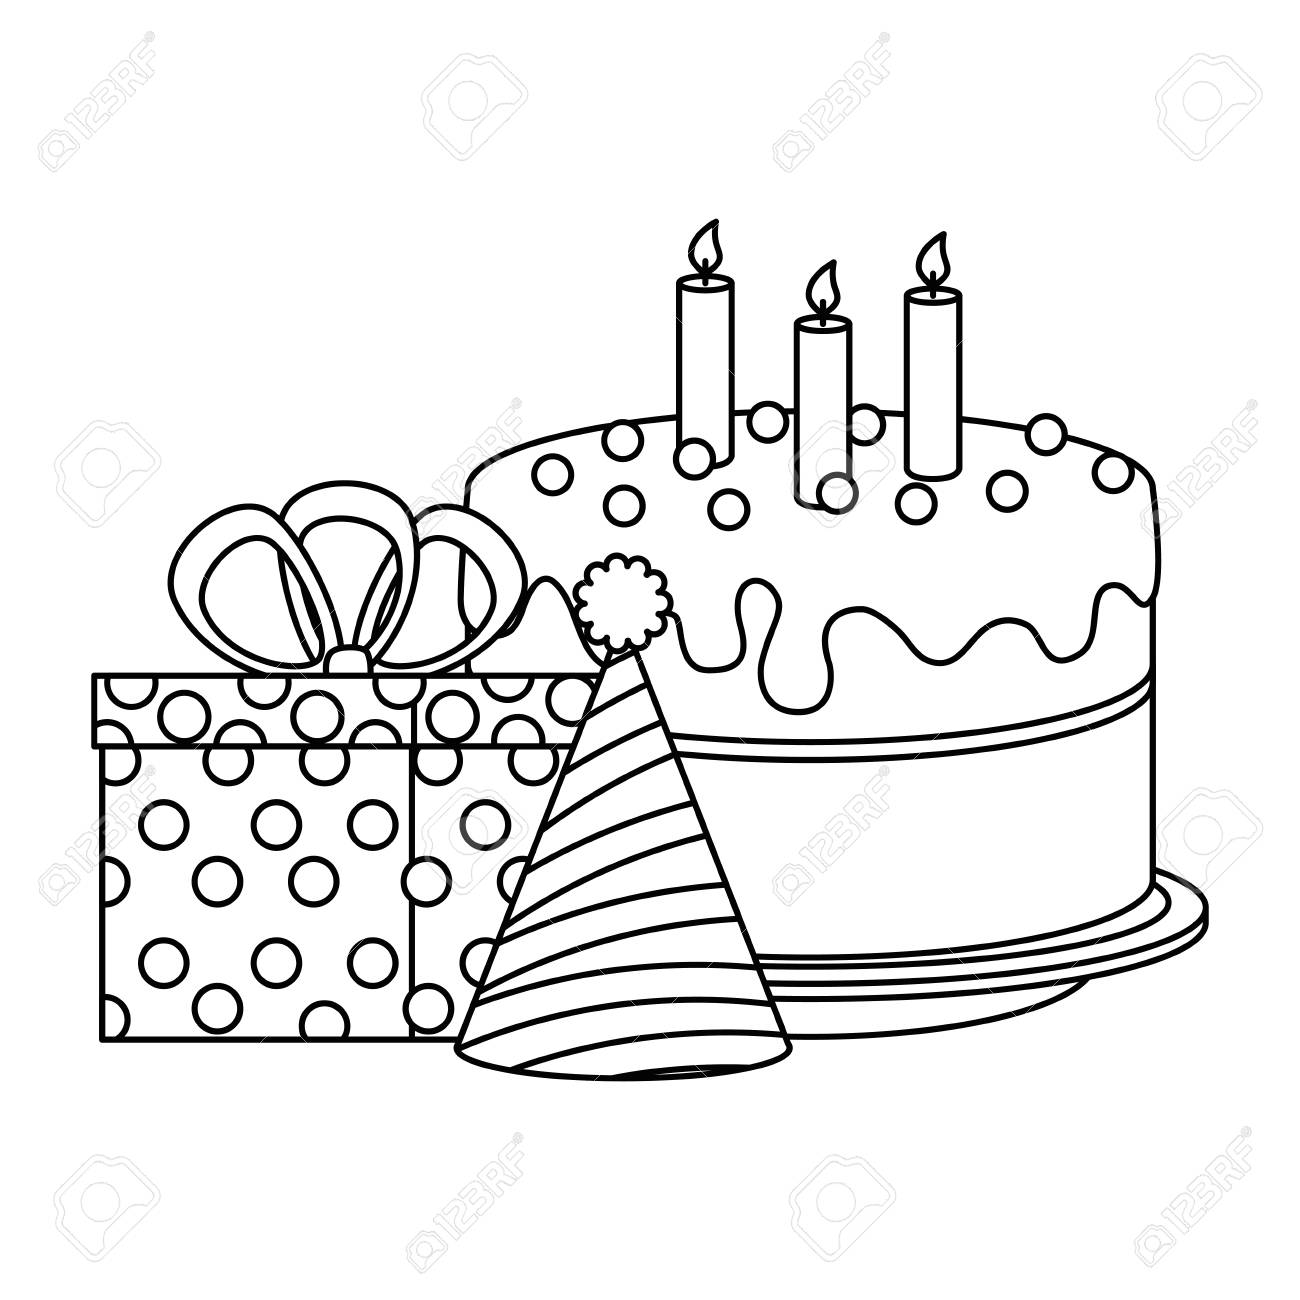 Delicious Cake With Gifts Presents And Hat Vector Illustration Royalty Free Cliparts Vectors And Stock Illustration Image 103375722